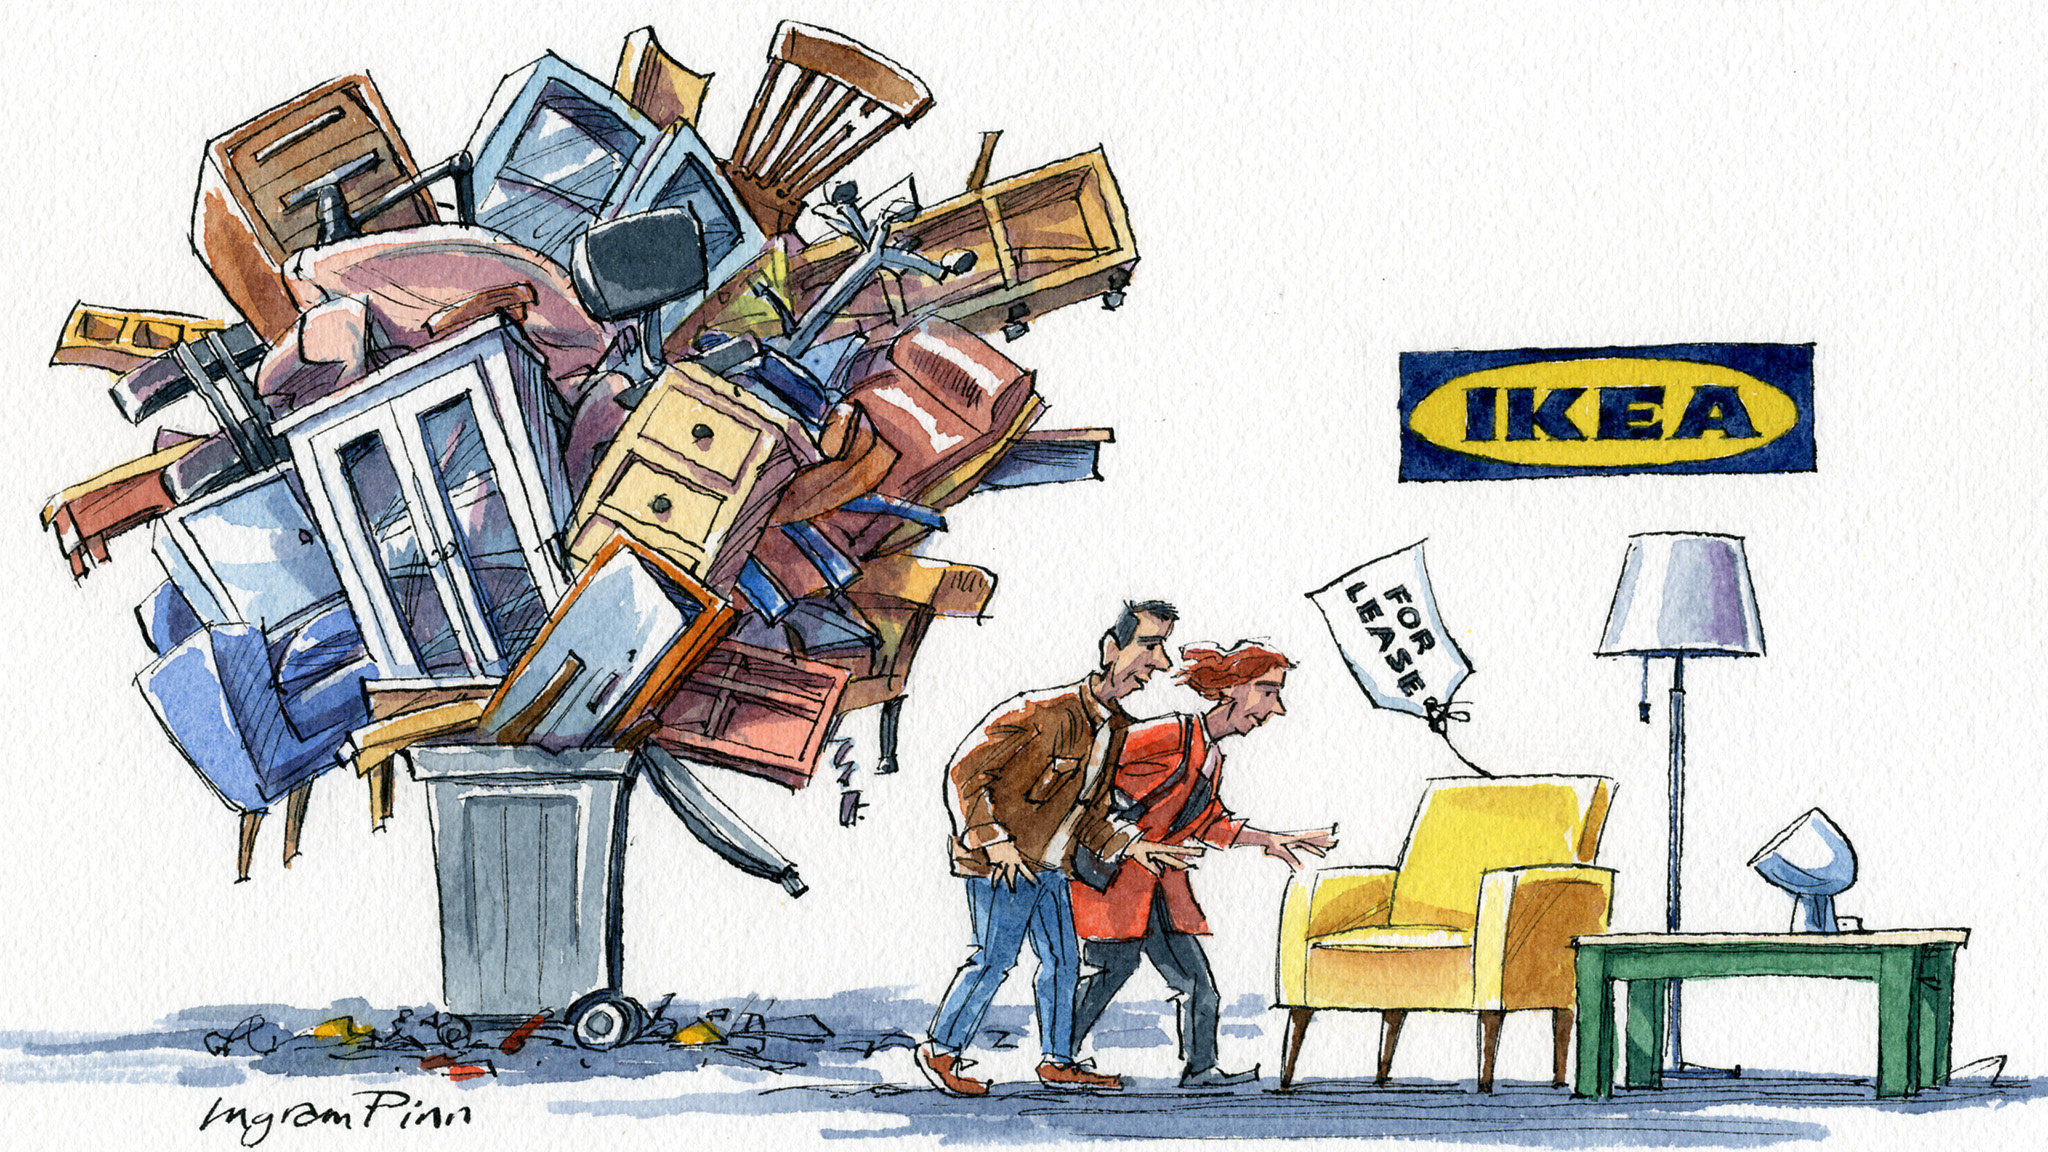 Ikea Furniture Does Not Need To Fall Apart Financial Times